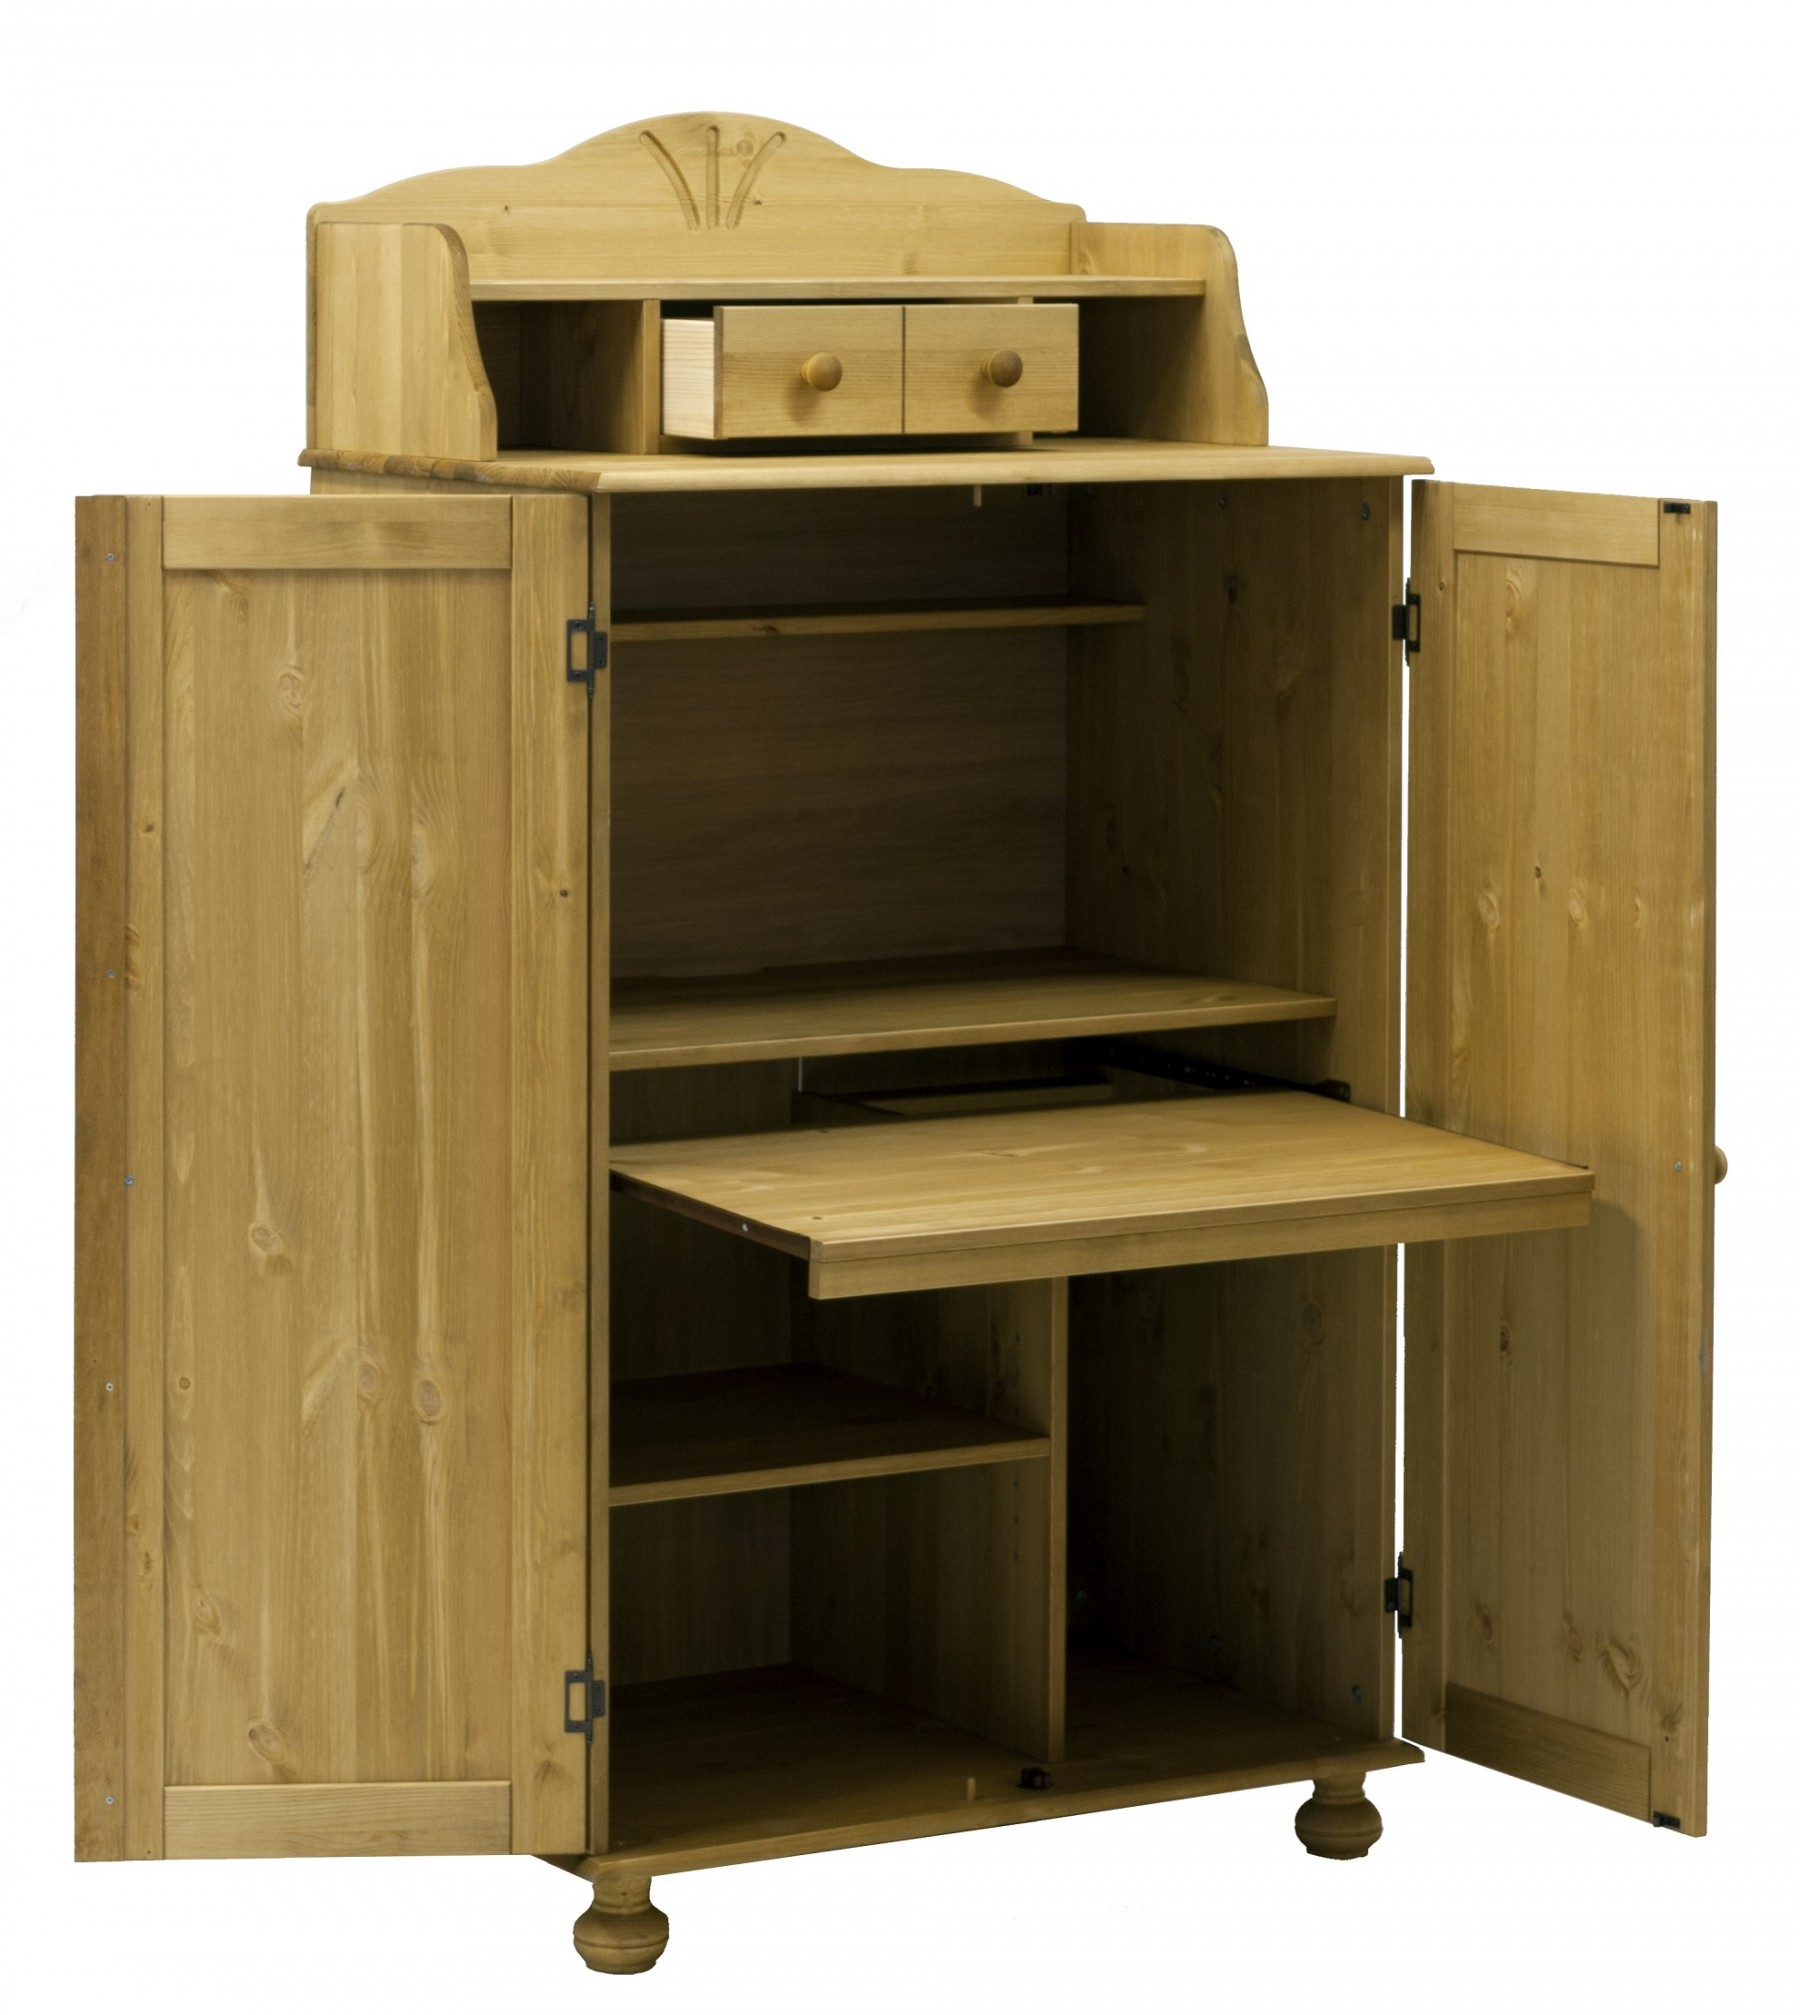 pc schrank aus massiver kiefer gelaugt ge lt. Black Bedroom Furniture Sets. Home Design Ideas